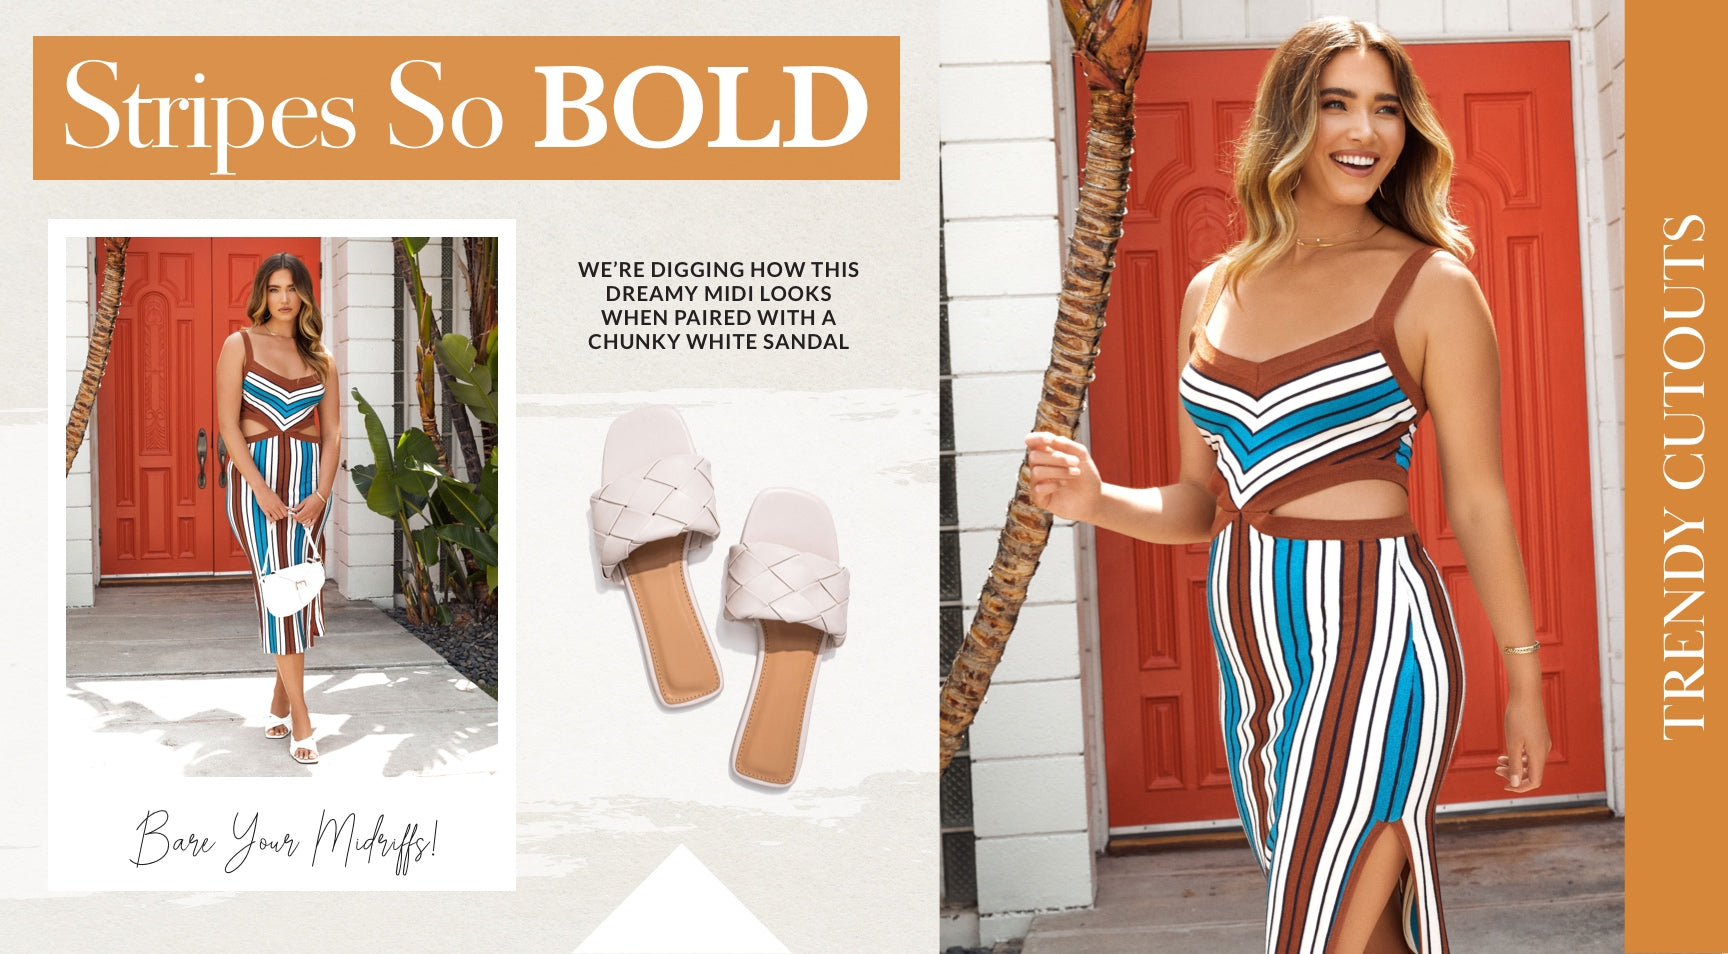 Thought the cutout trend would fade away with the summer sun? Nope! Get ready to bare your midriffs to the September chill because cutout trends are tagging along this Fall season. We're digging how this dreamy midi looks when paired with a chunky white heel.